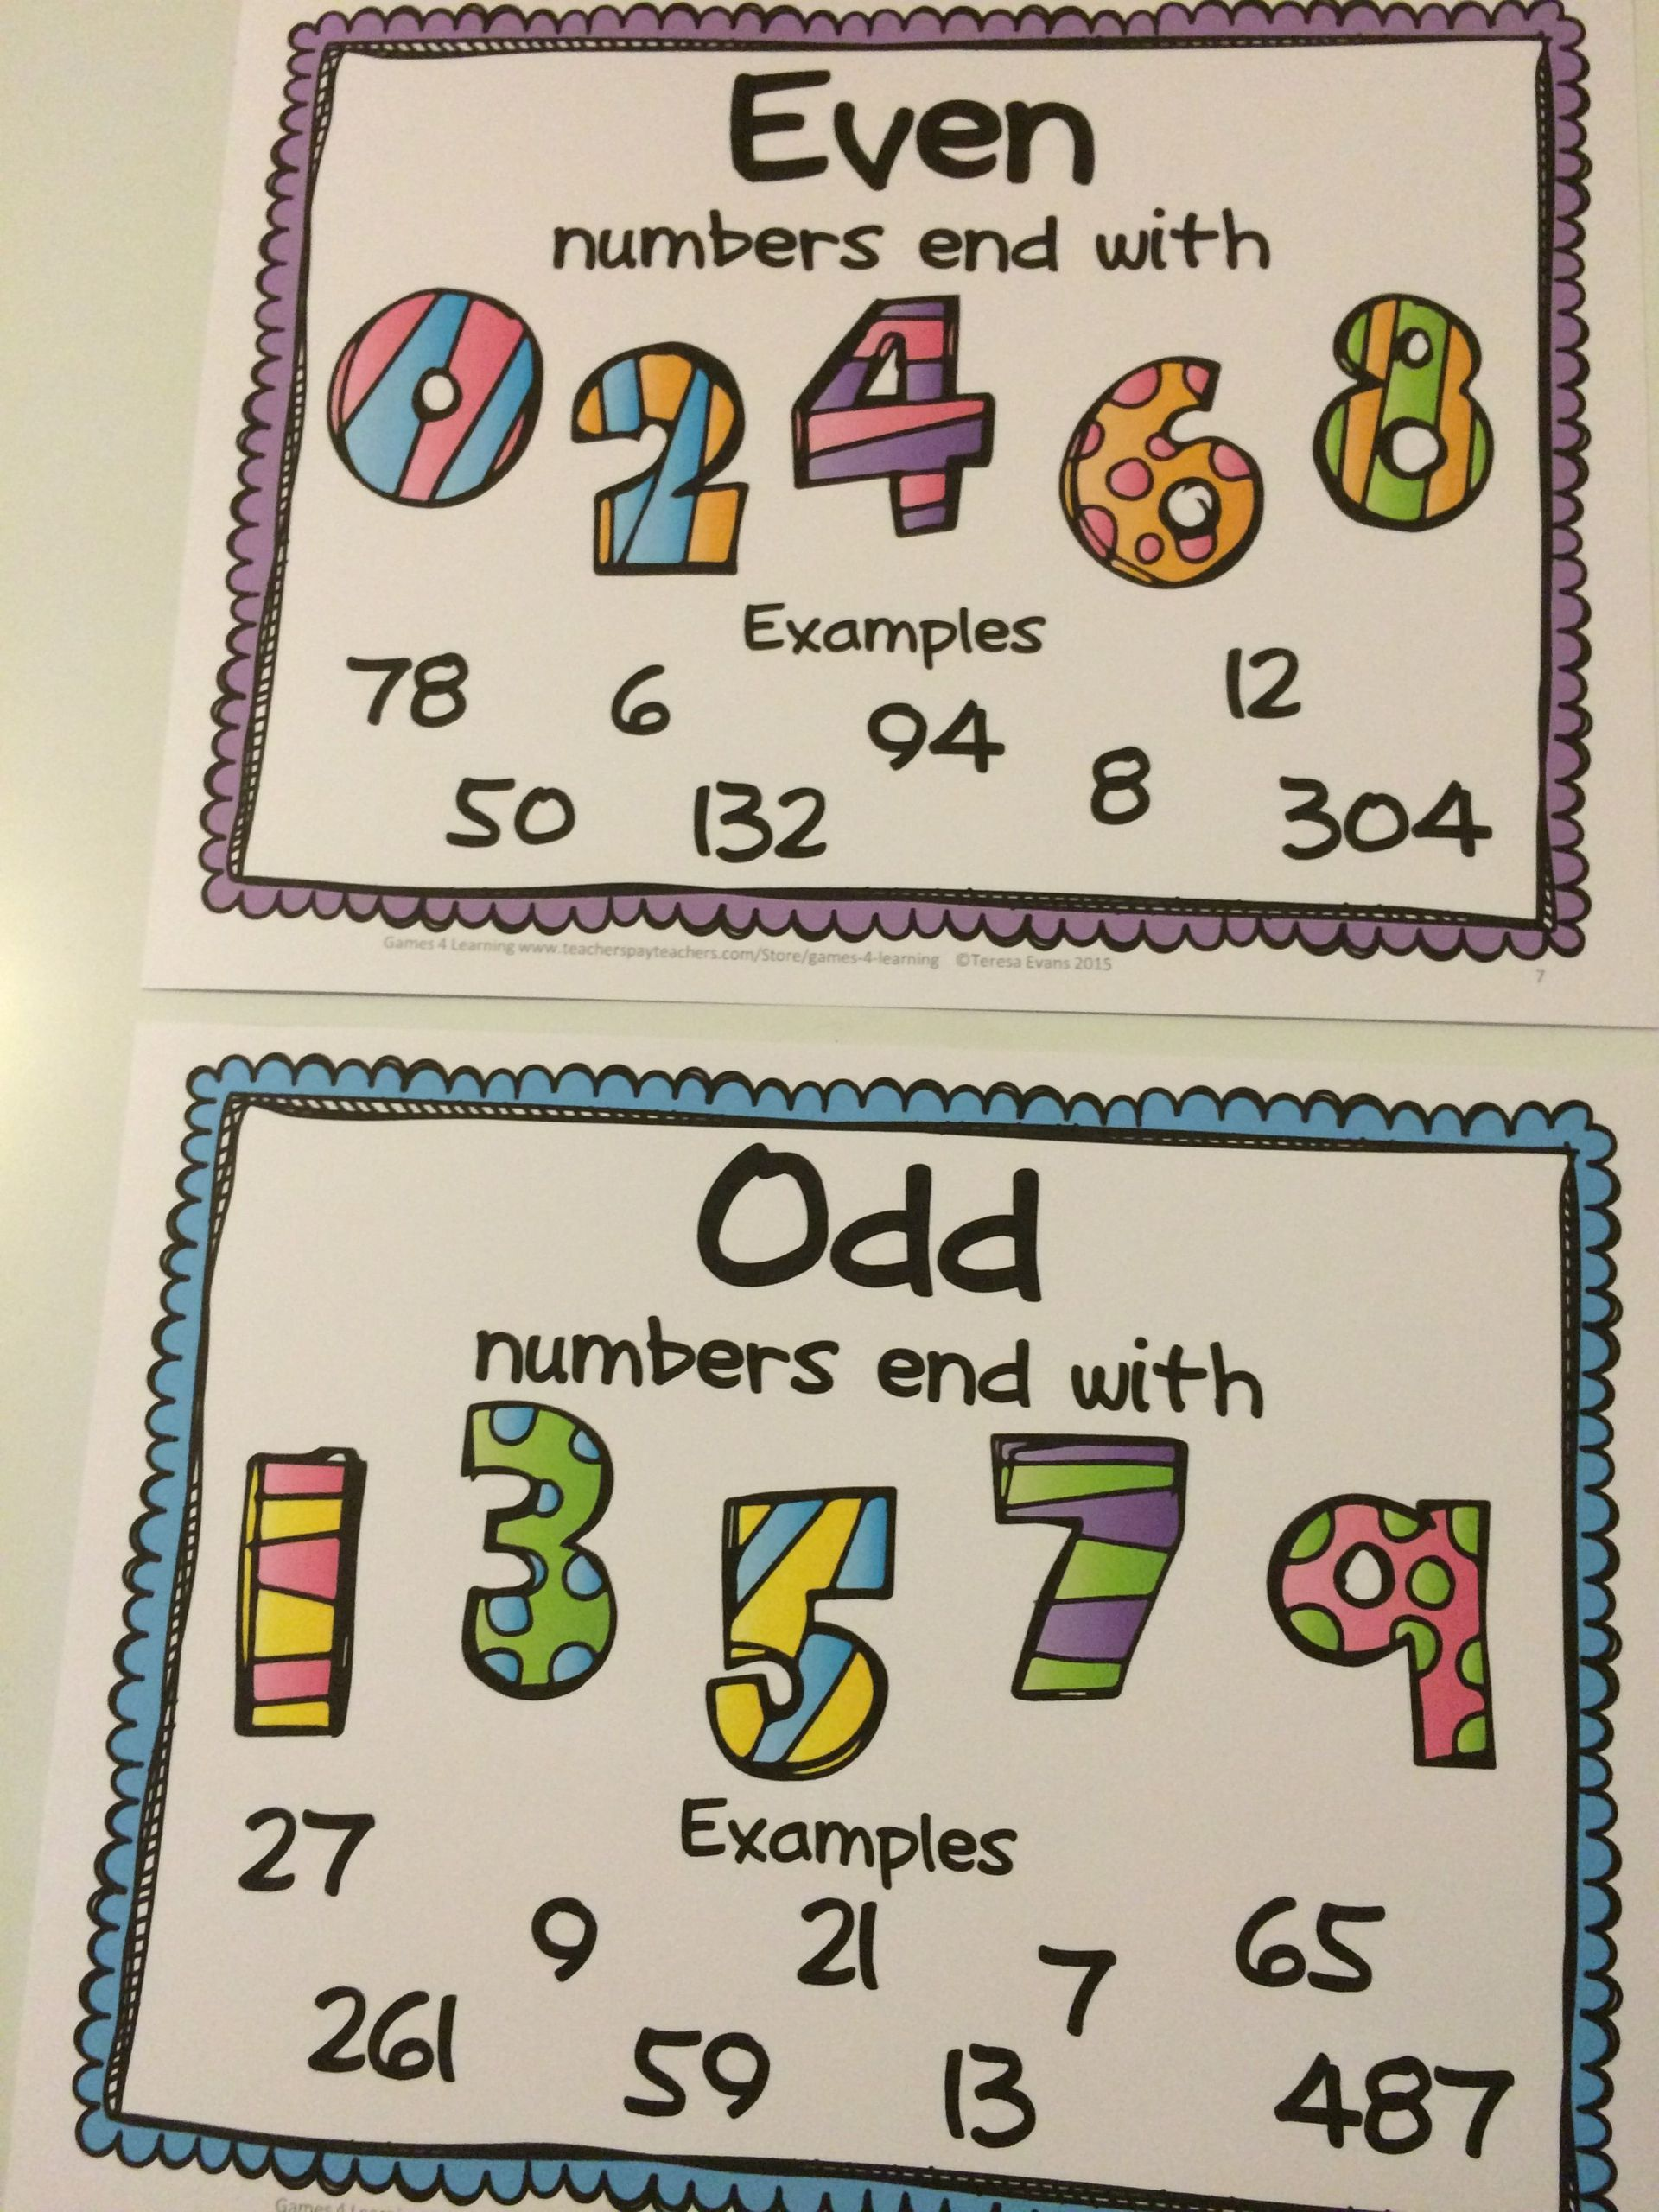 3 Free Math Worksheets Third Grade 3 Subtraction Subtract 2 Digit Number From Whole Hundreds In 2020 Math School Even And Odd Second Grade Math